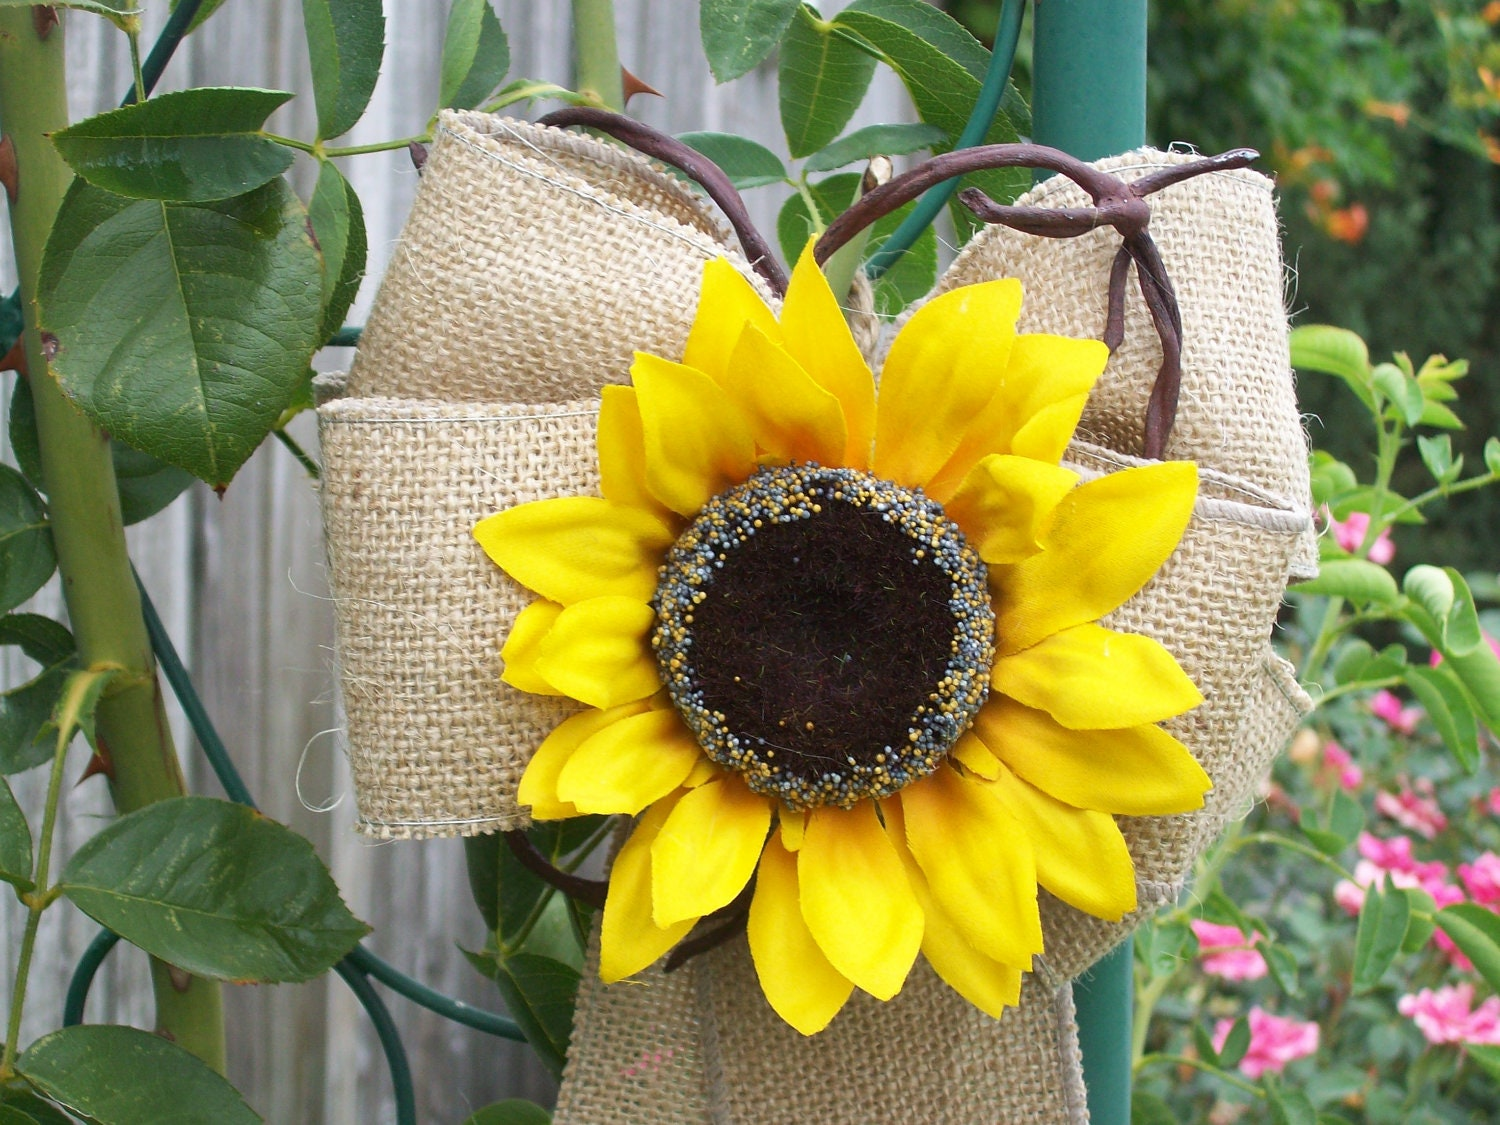 sunflower wedding burlap pew bows country wedding decor - Sunflower Decorations